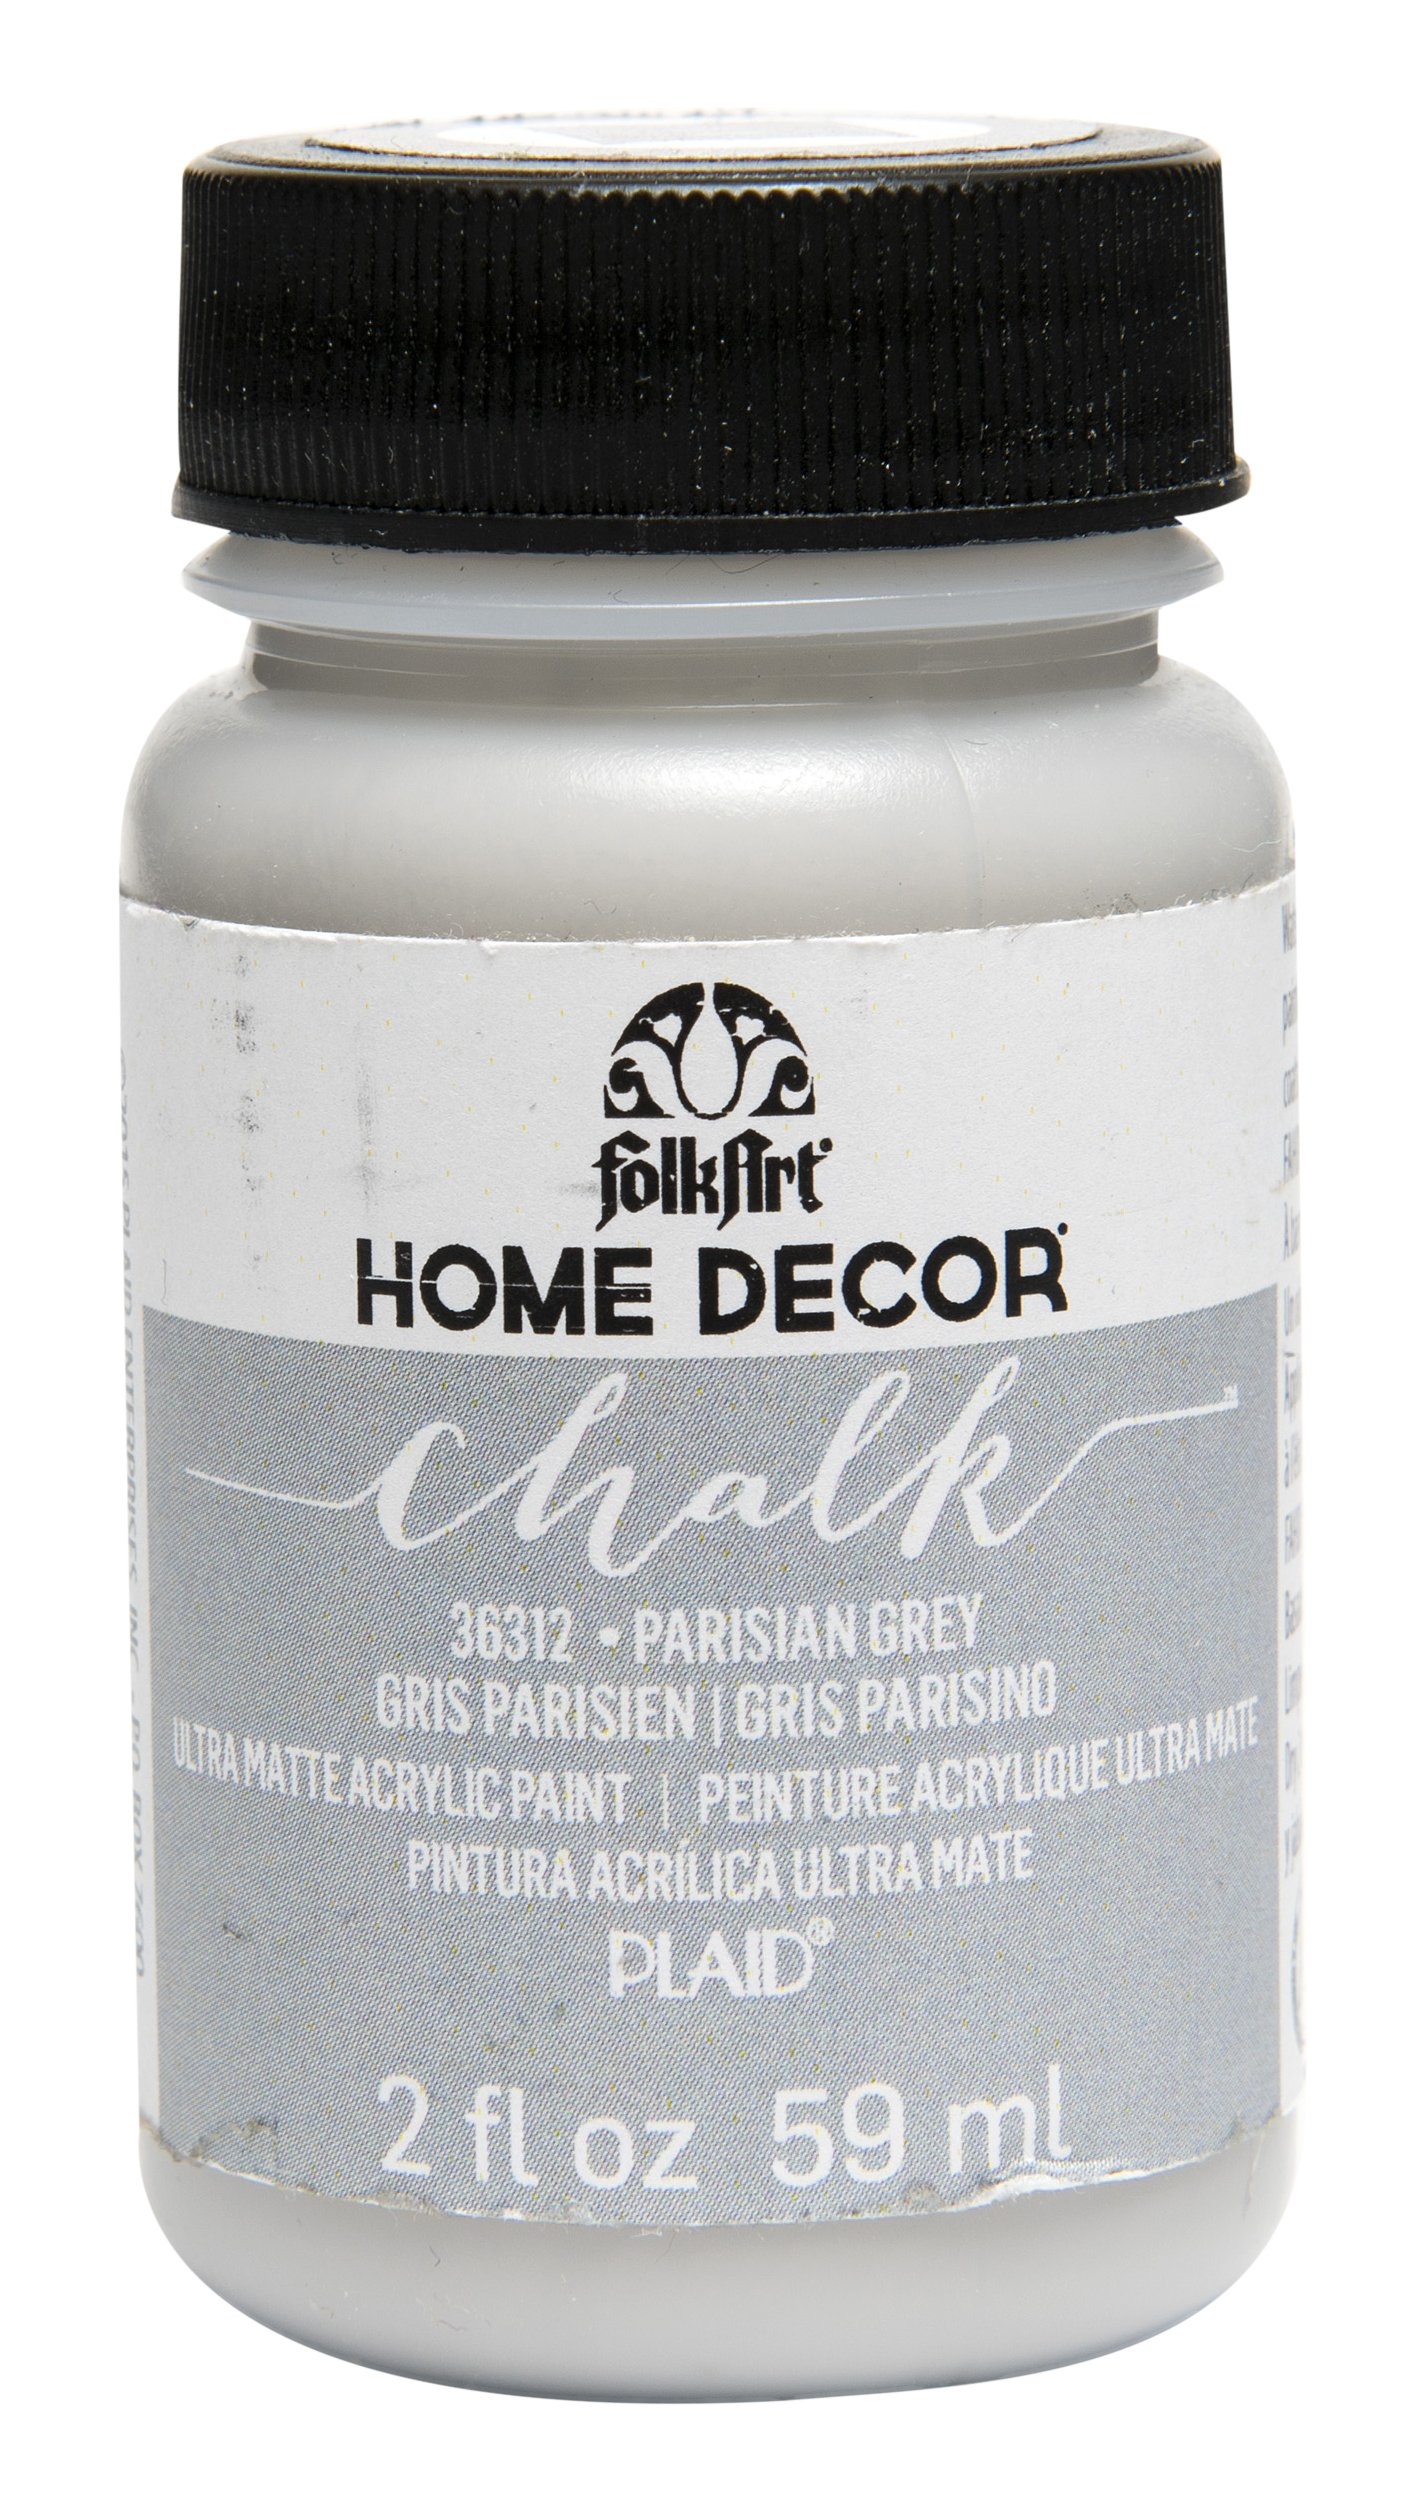 FolkArt Home Decor Chalk Furniture & Craft Paint in Assorted Colors (2 Ounce), 36312 Parisian Grey